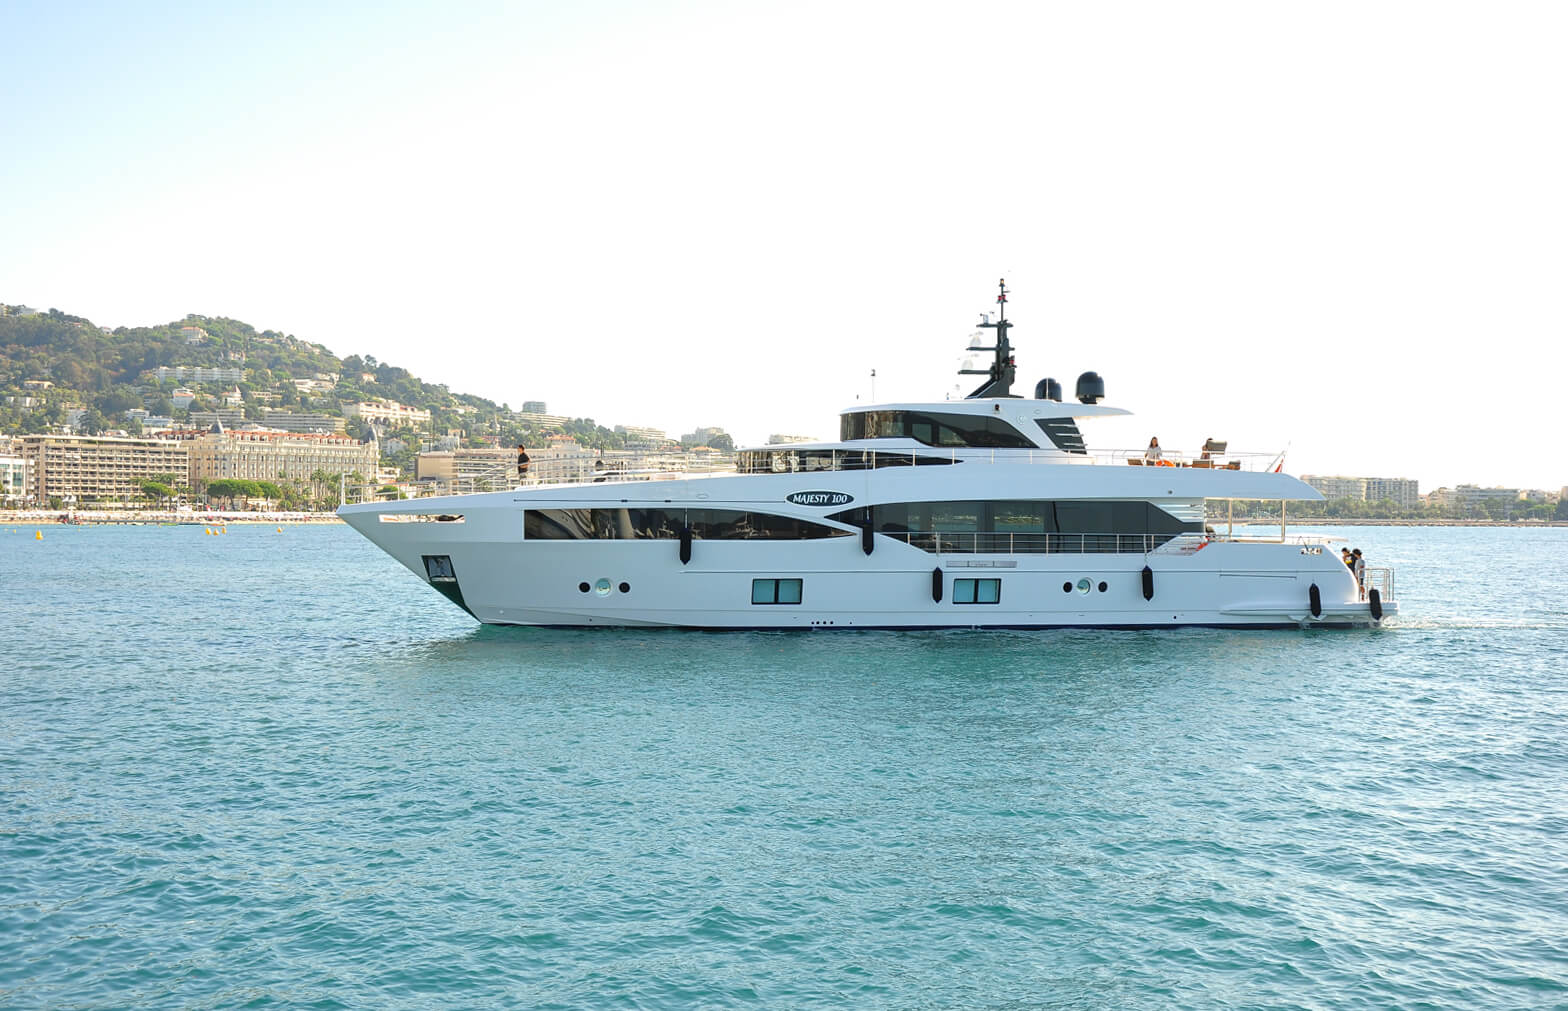 Gulf Craft - Majesty 100 at Cannes Yachting Festival